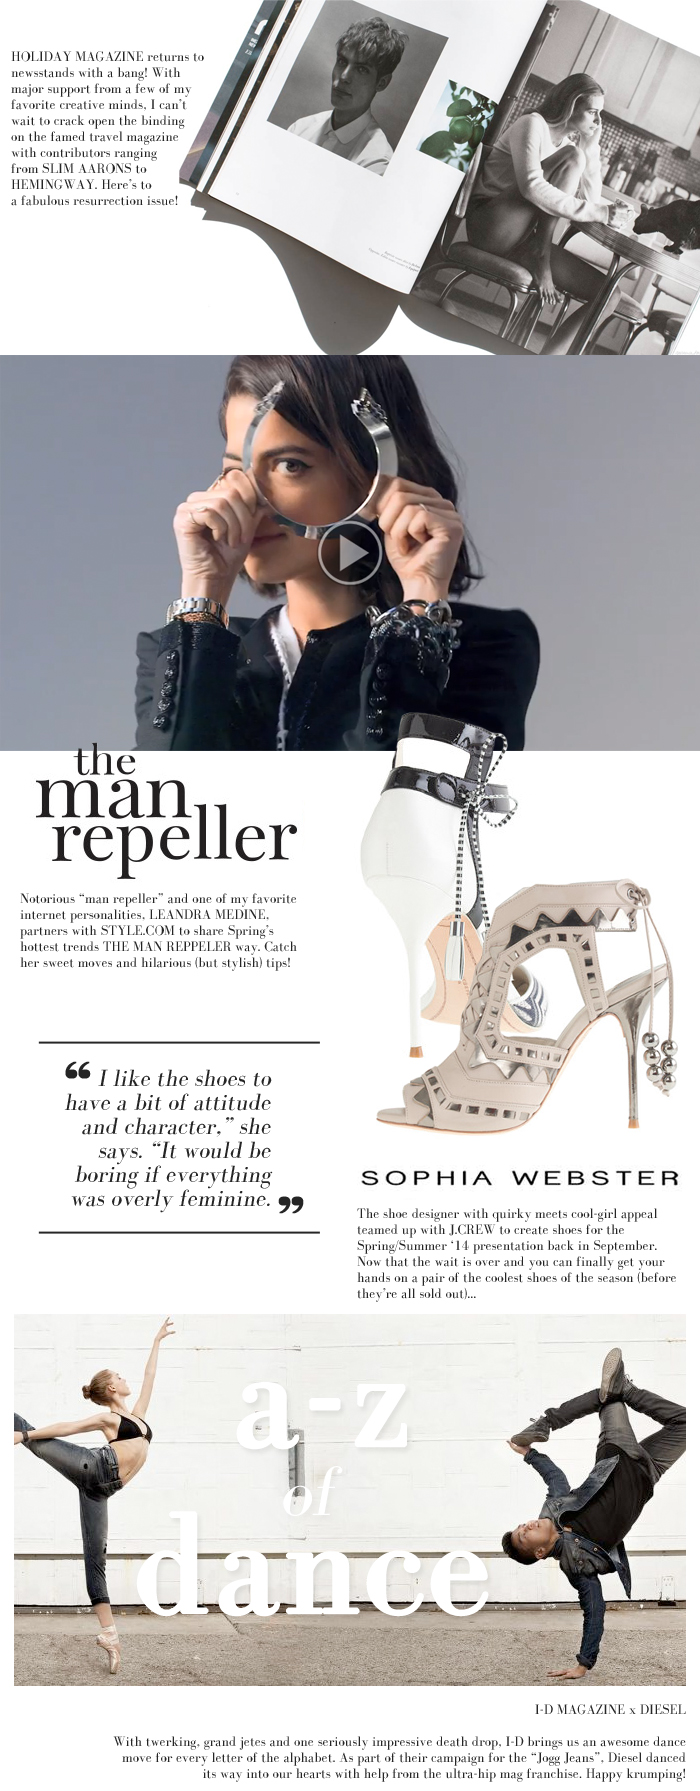 happy-friday-sophia-webster-j.crew-the-man-repeller-style.com-i-d-magazine-dance-holiday